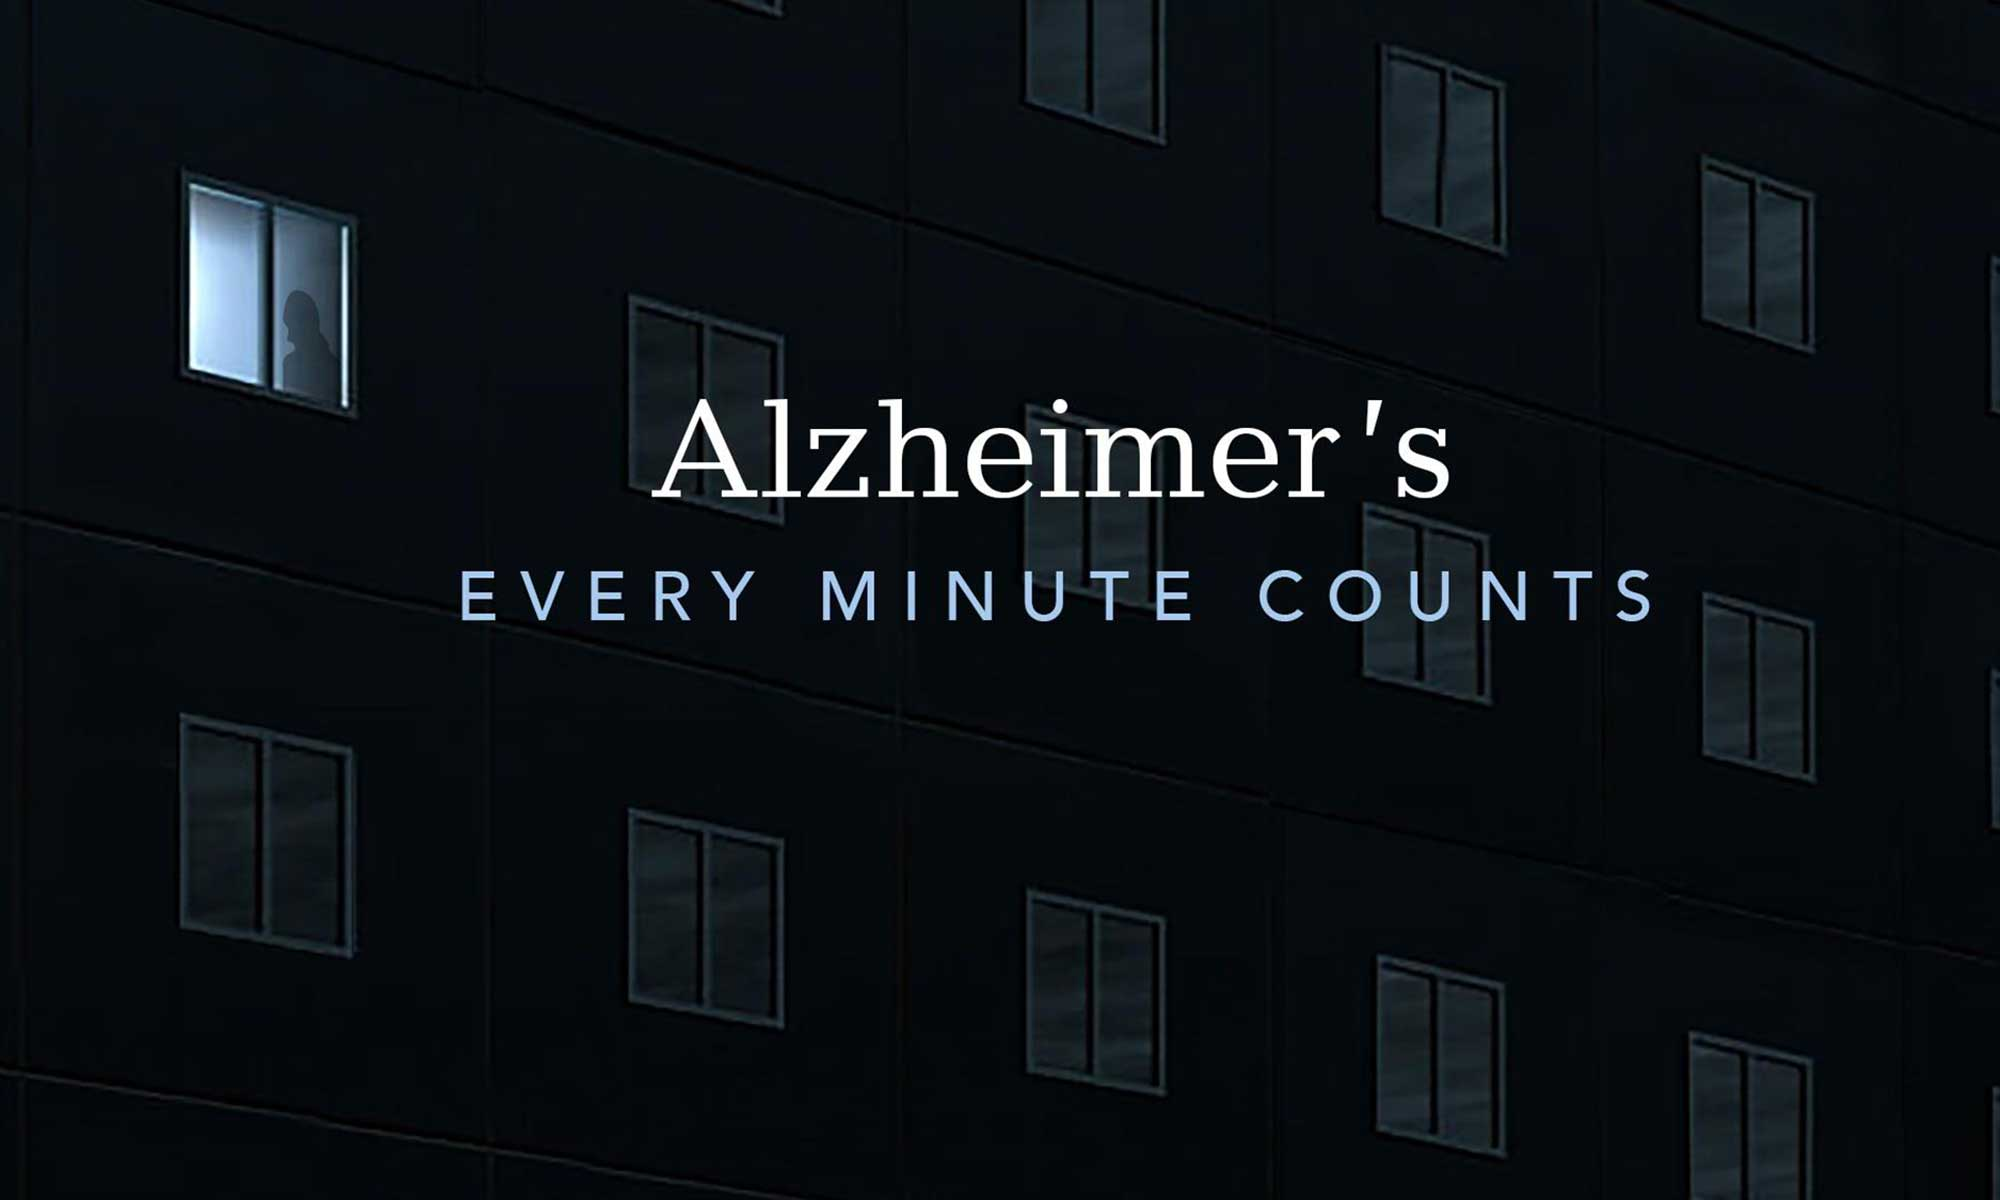 Alzheimer's in the news